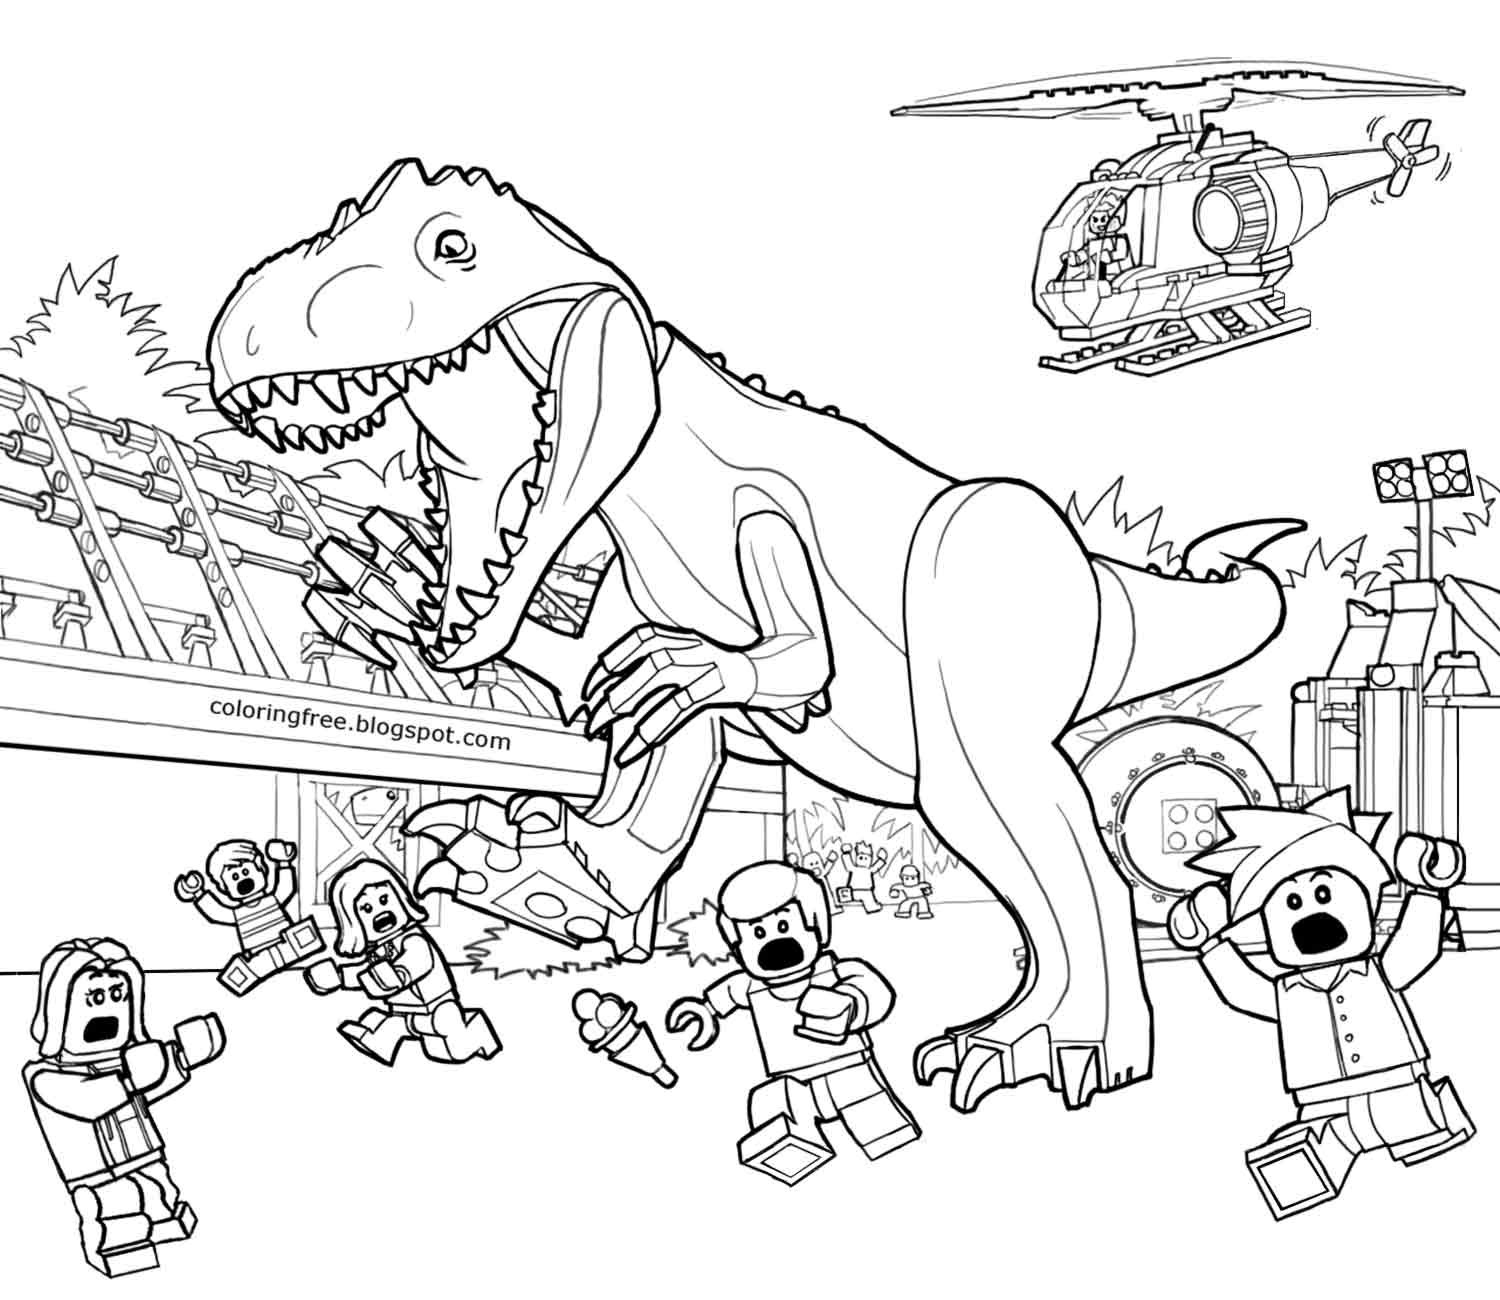 1500x1300 Coloring Pages Draw A Dinosaur Best Of Walking With Dinosaurs How